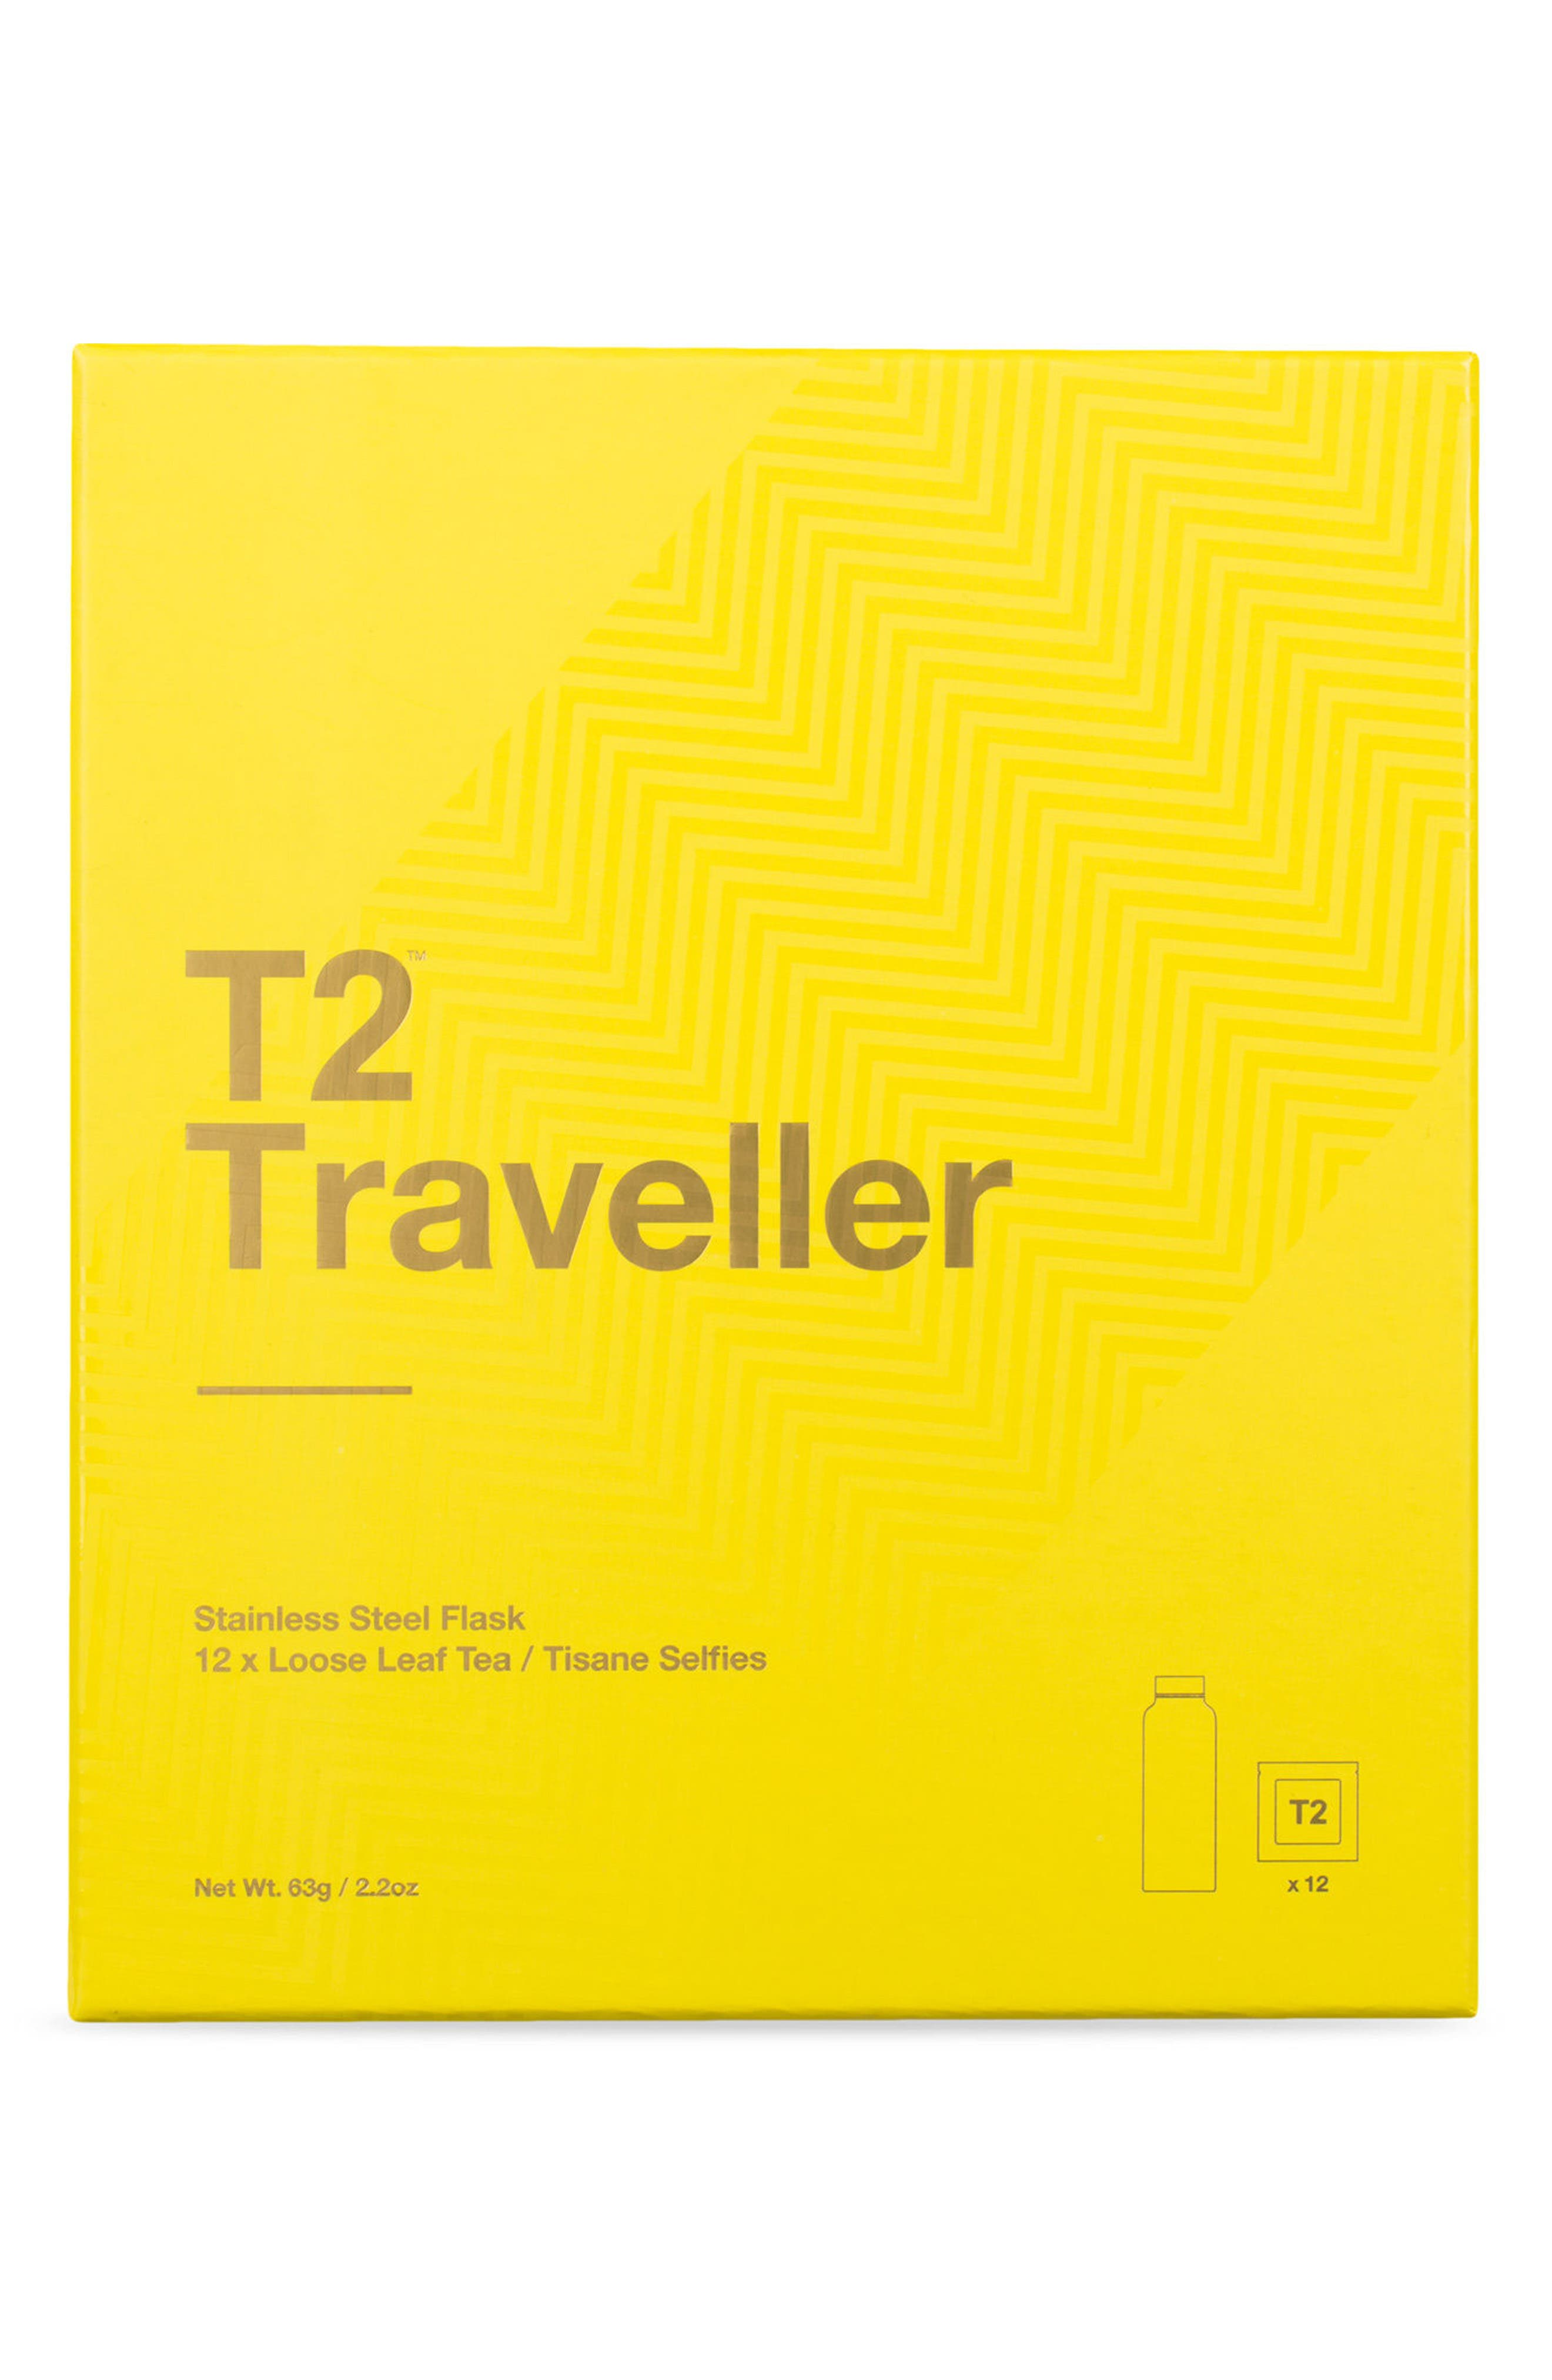 T2 Tea Traveller Stainless Steel Tea Flask